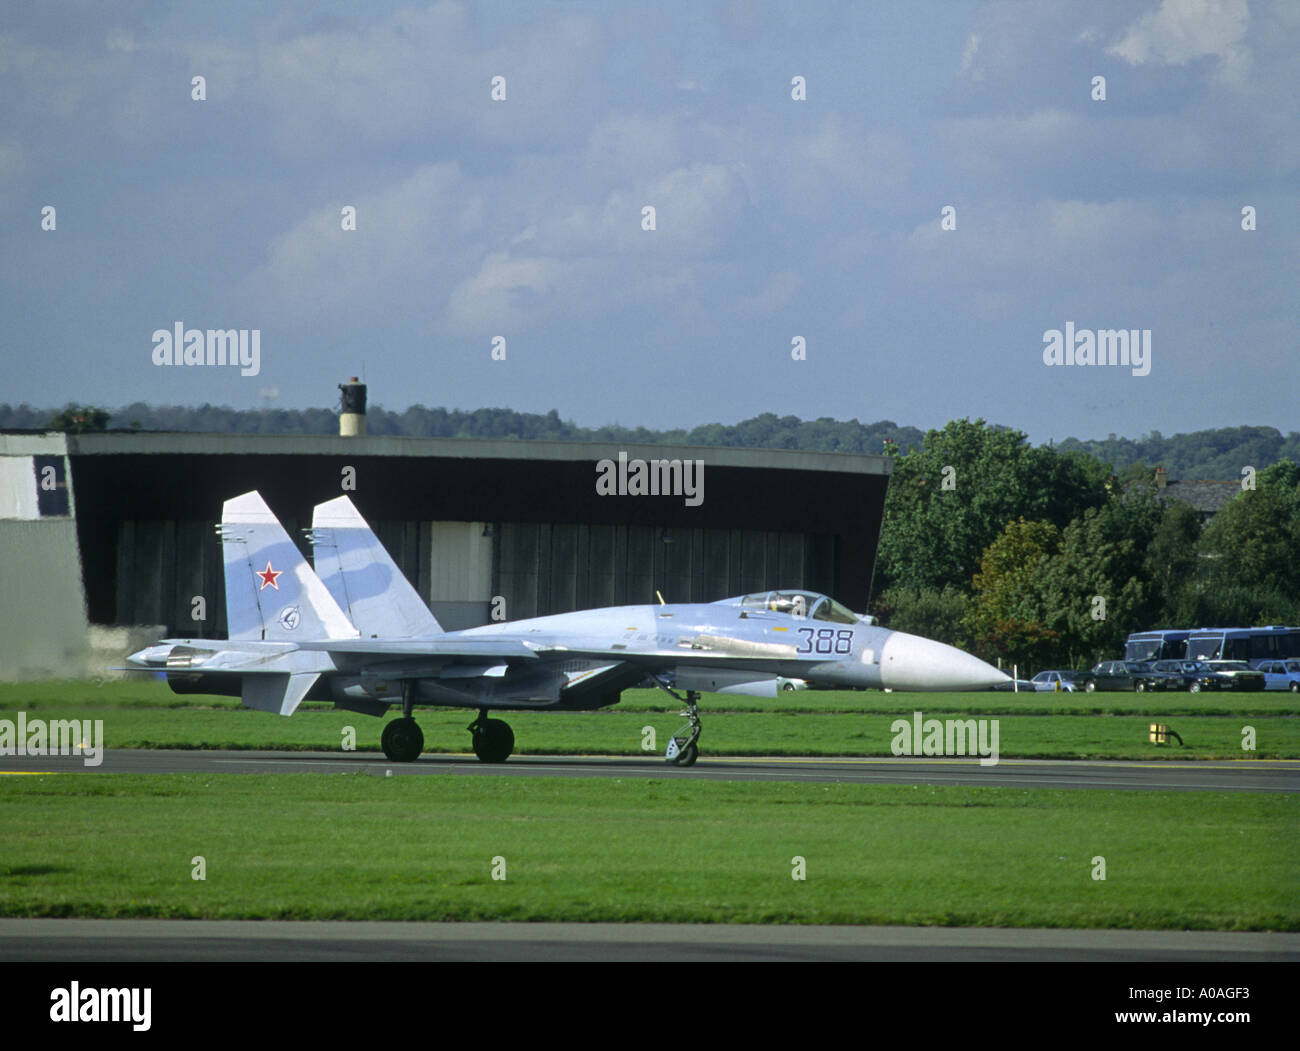 Russian Airforce SU27 Flanker twin-engine supermanoeuverable fighter aircraft.   GAV 2098-86 - Stock Image